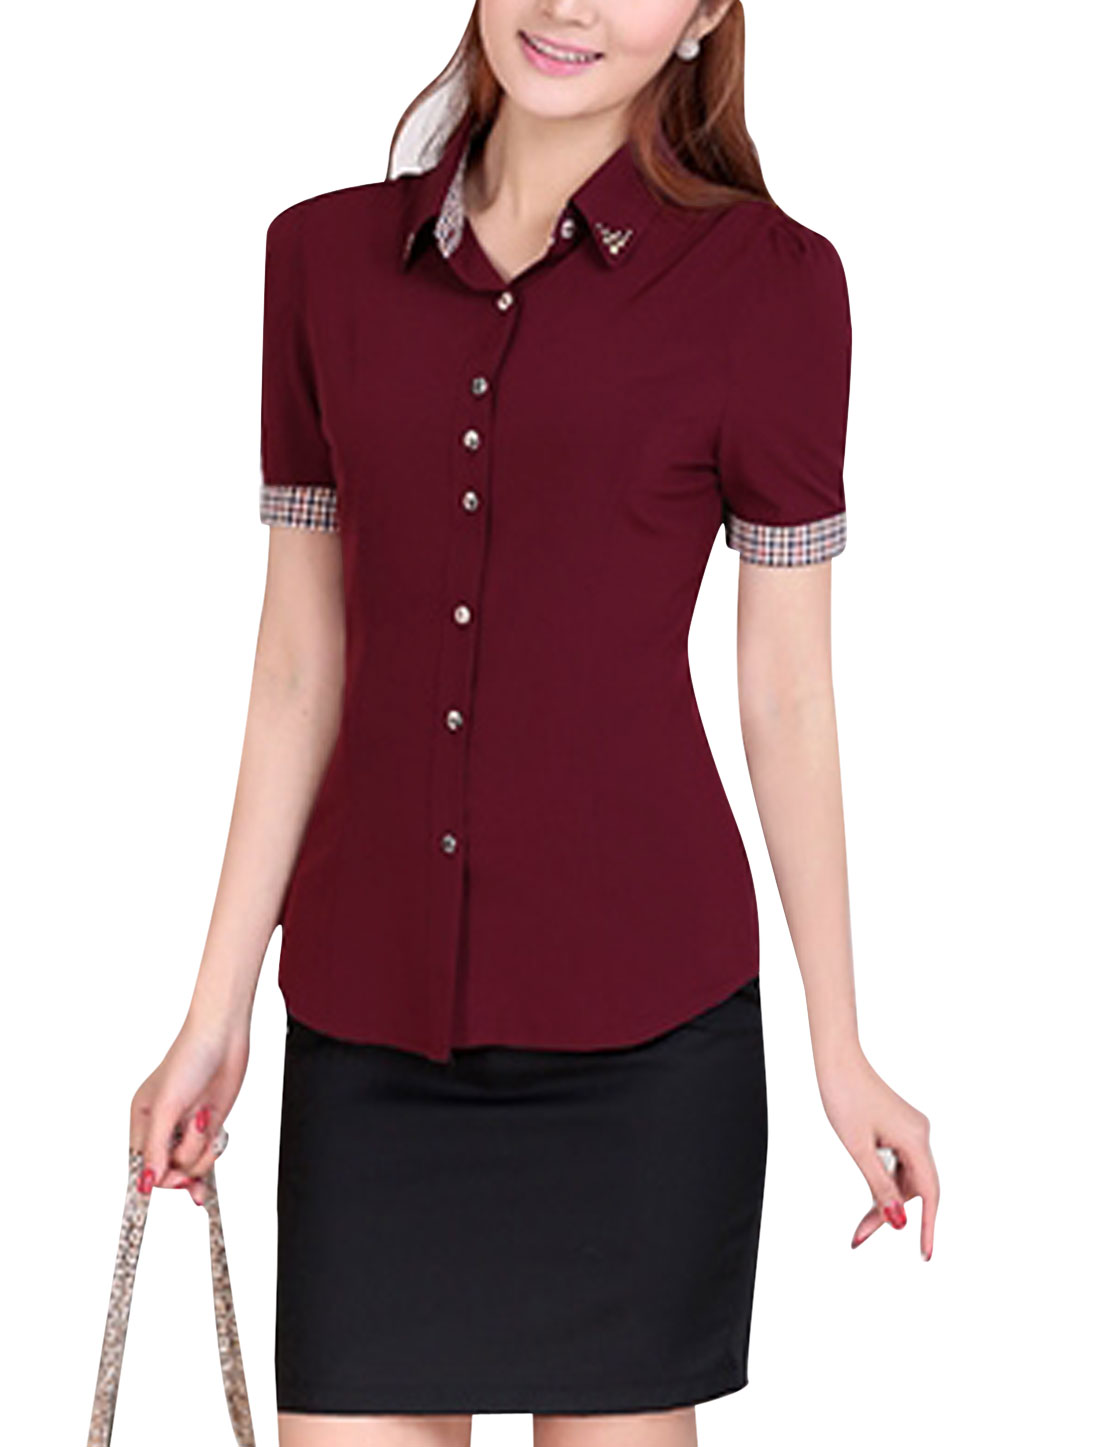 Lady Short Sleeve Single Breasted Rivet Decor Shirt Burgundy M